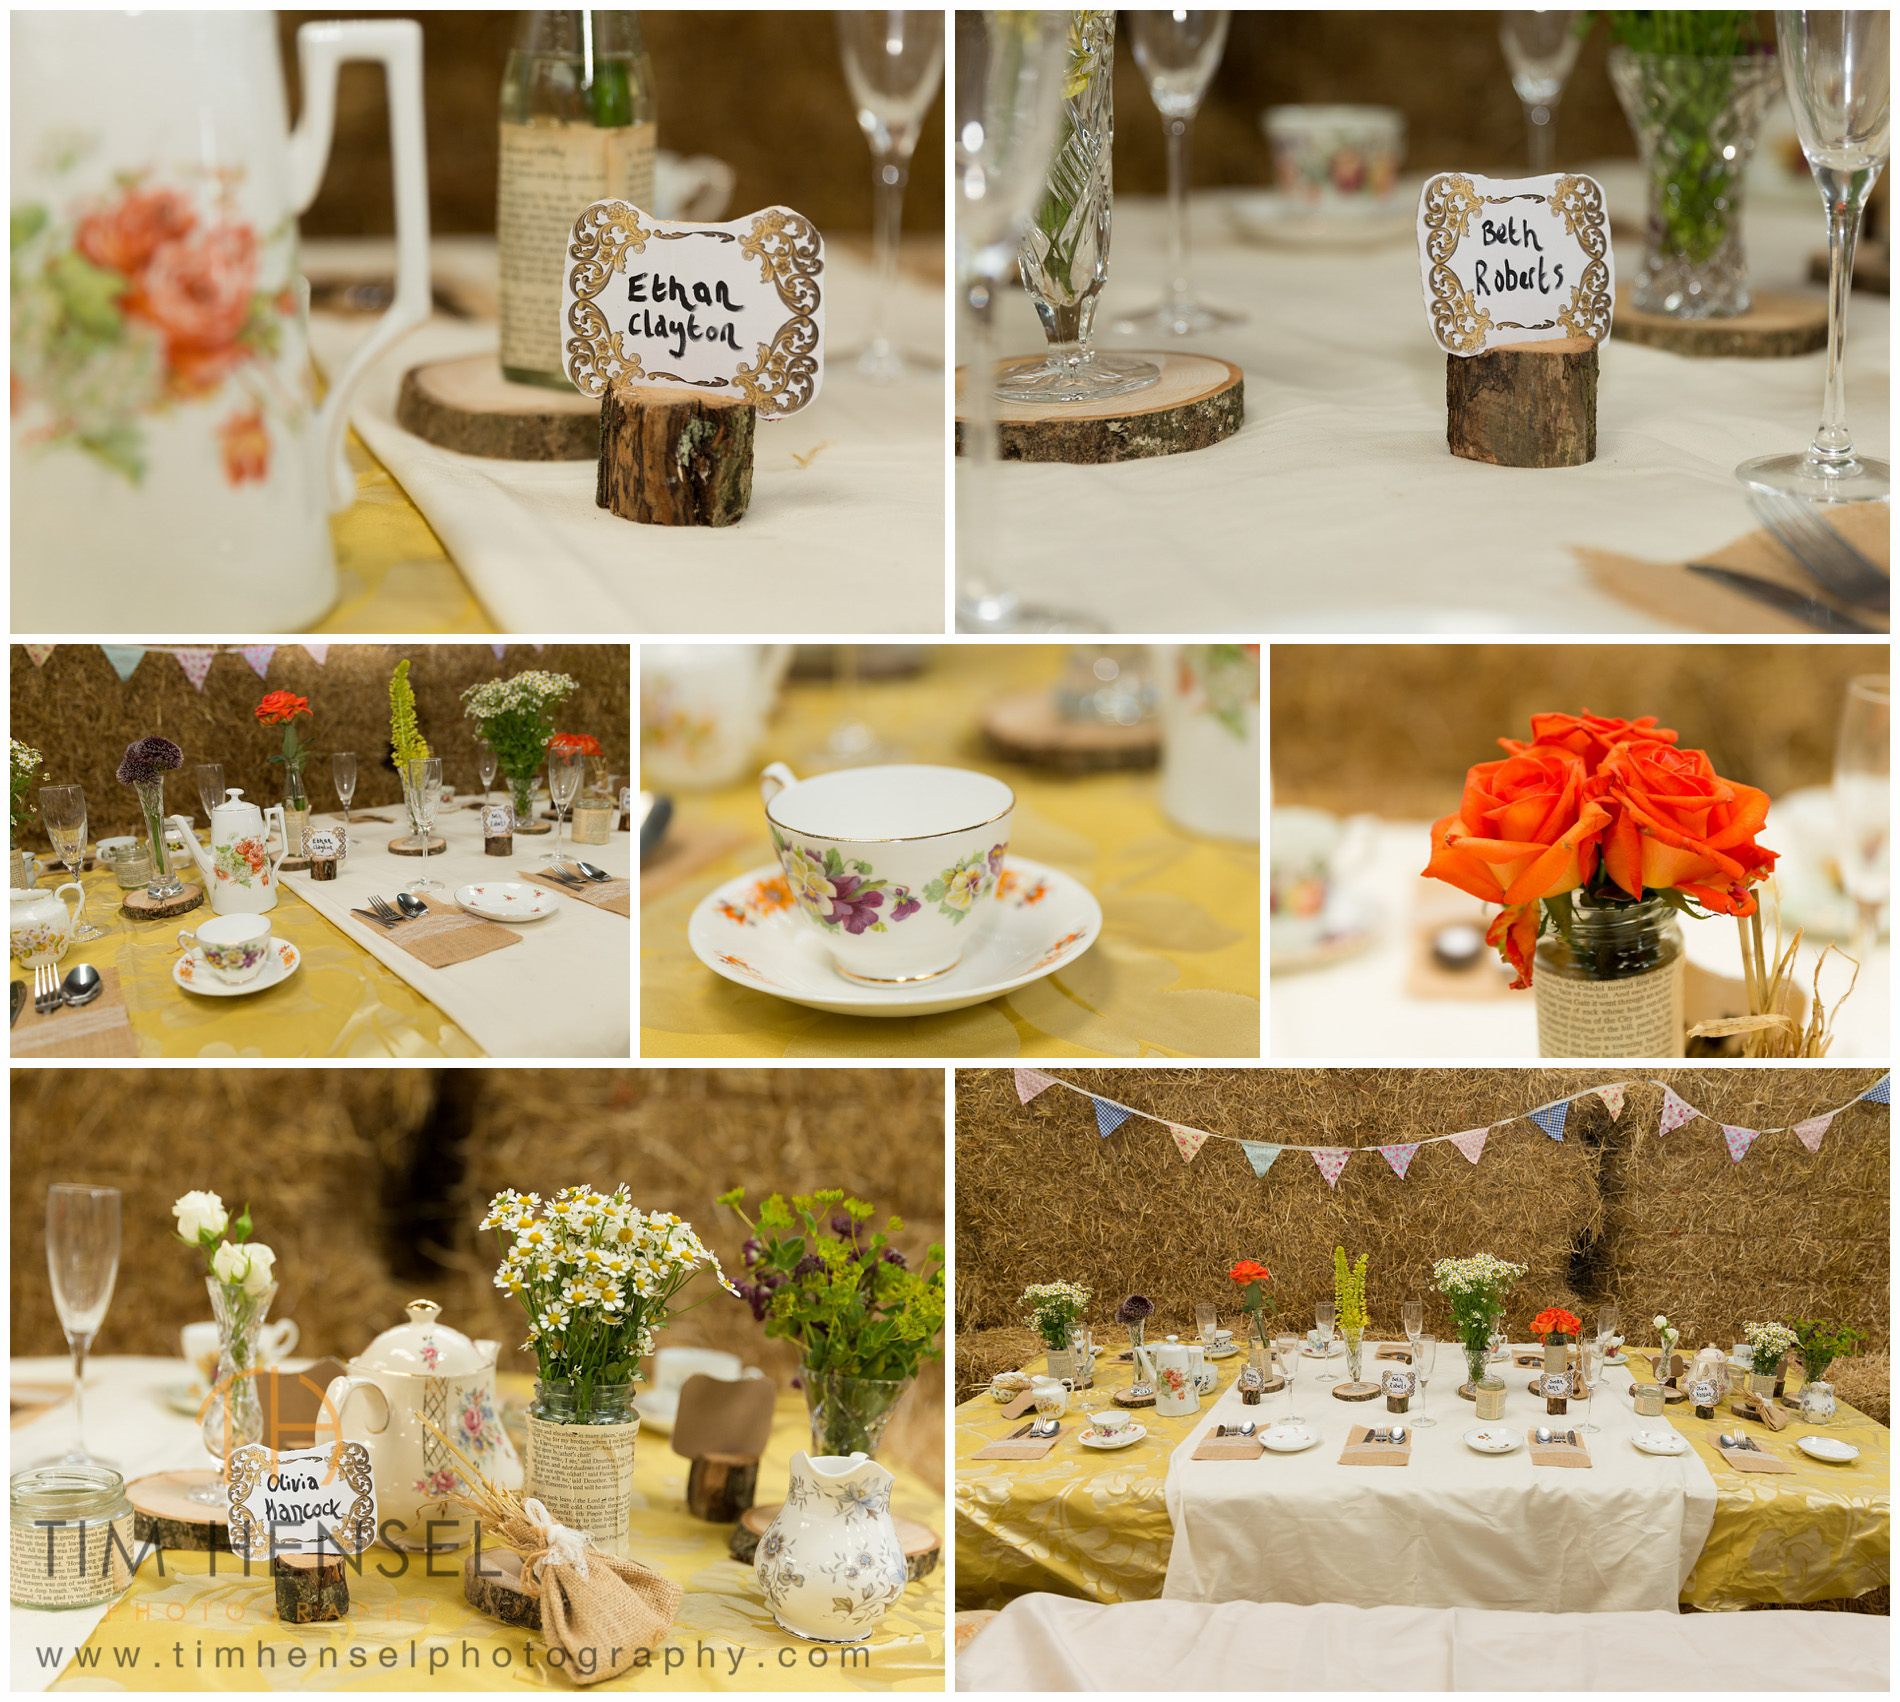 Details And Place Settings For Rustic Wedding Photography In Derbyshire